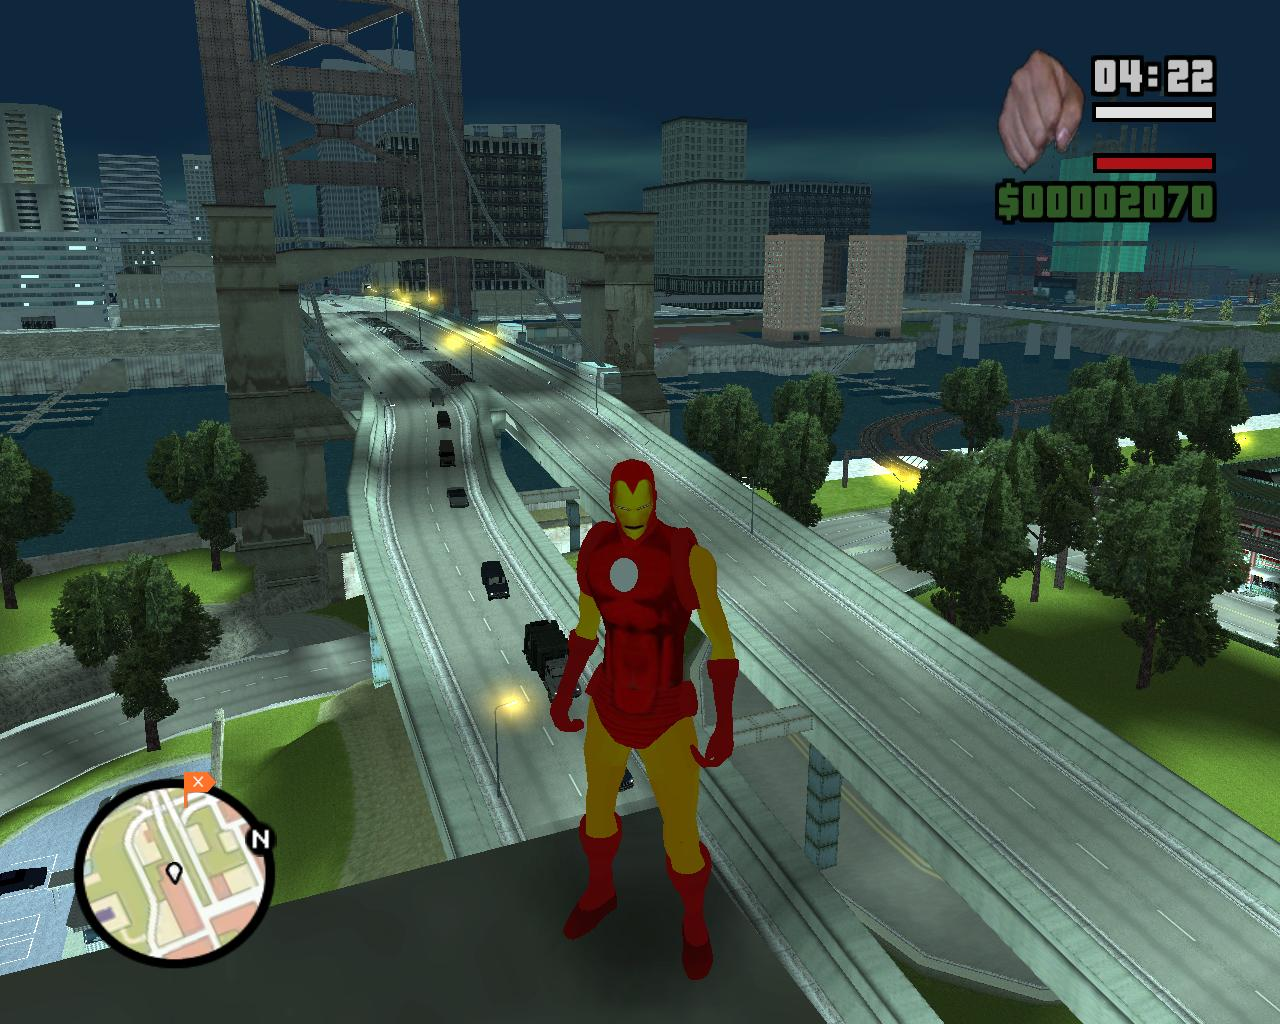 Gta san andreas iron man mod android download | Download